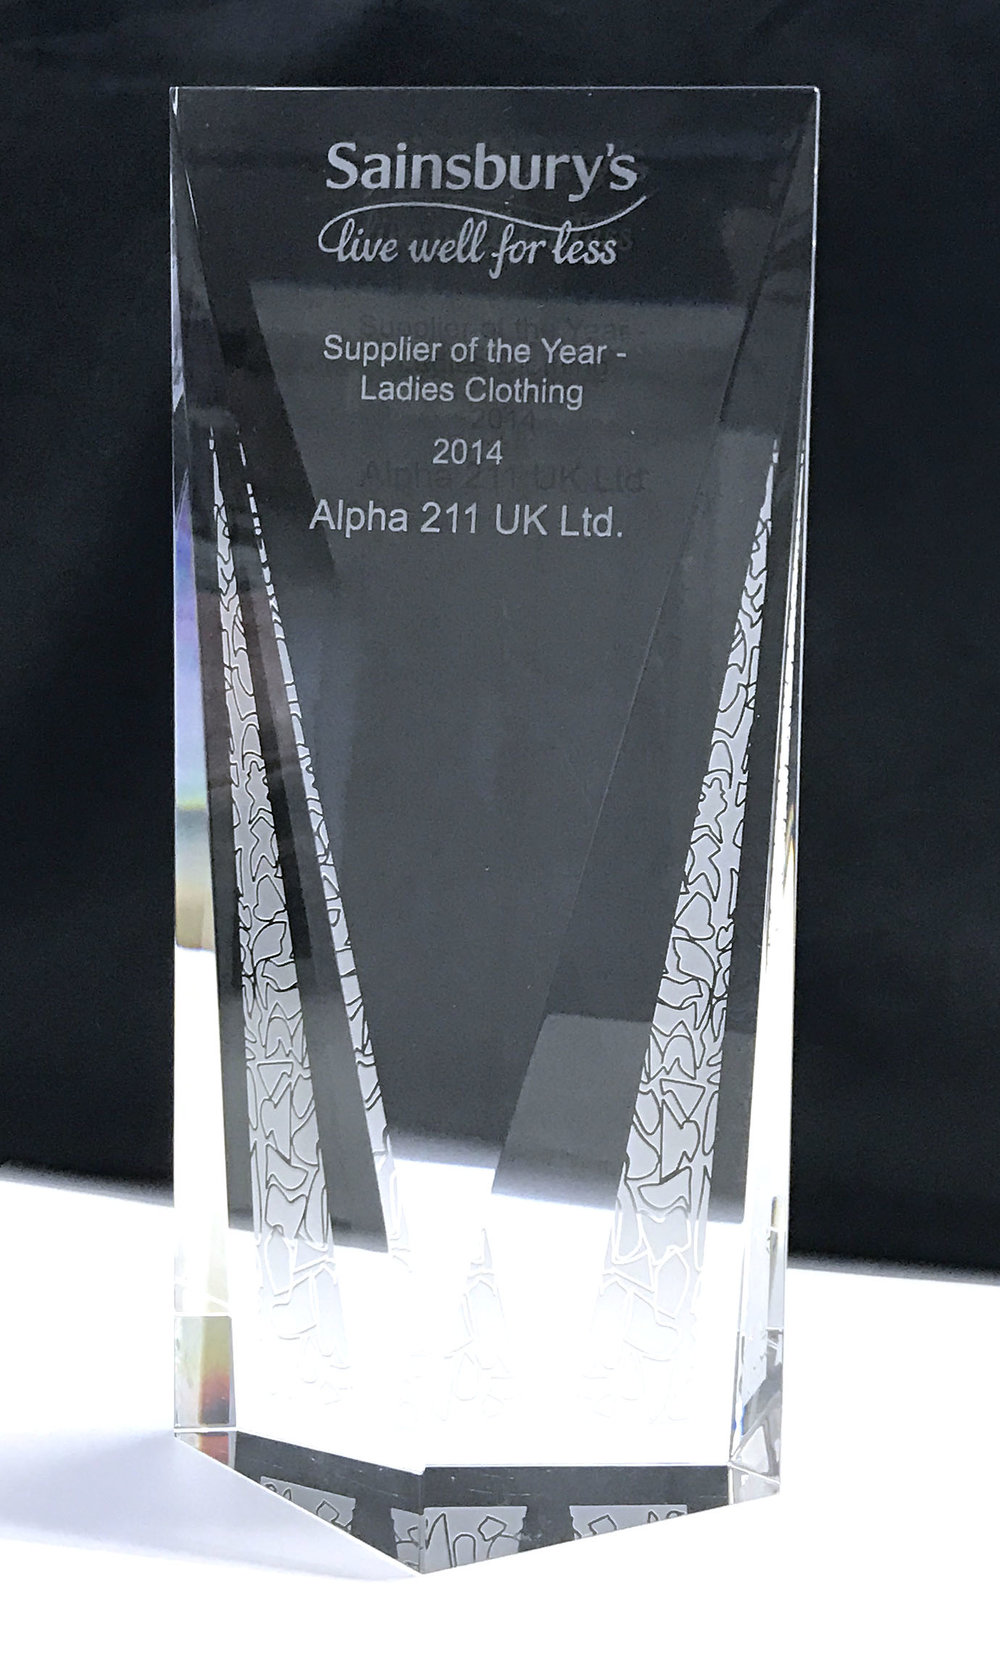 Supplier of the Year - Sainsbury's - Ladies Clothing 2014